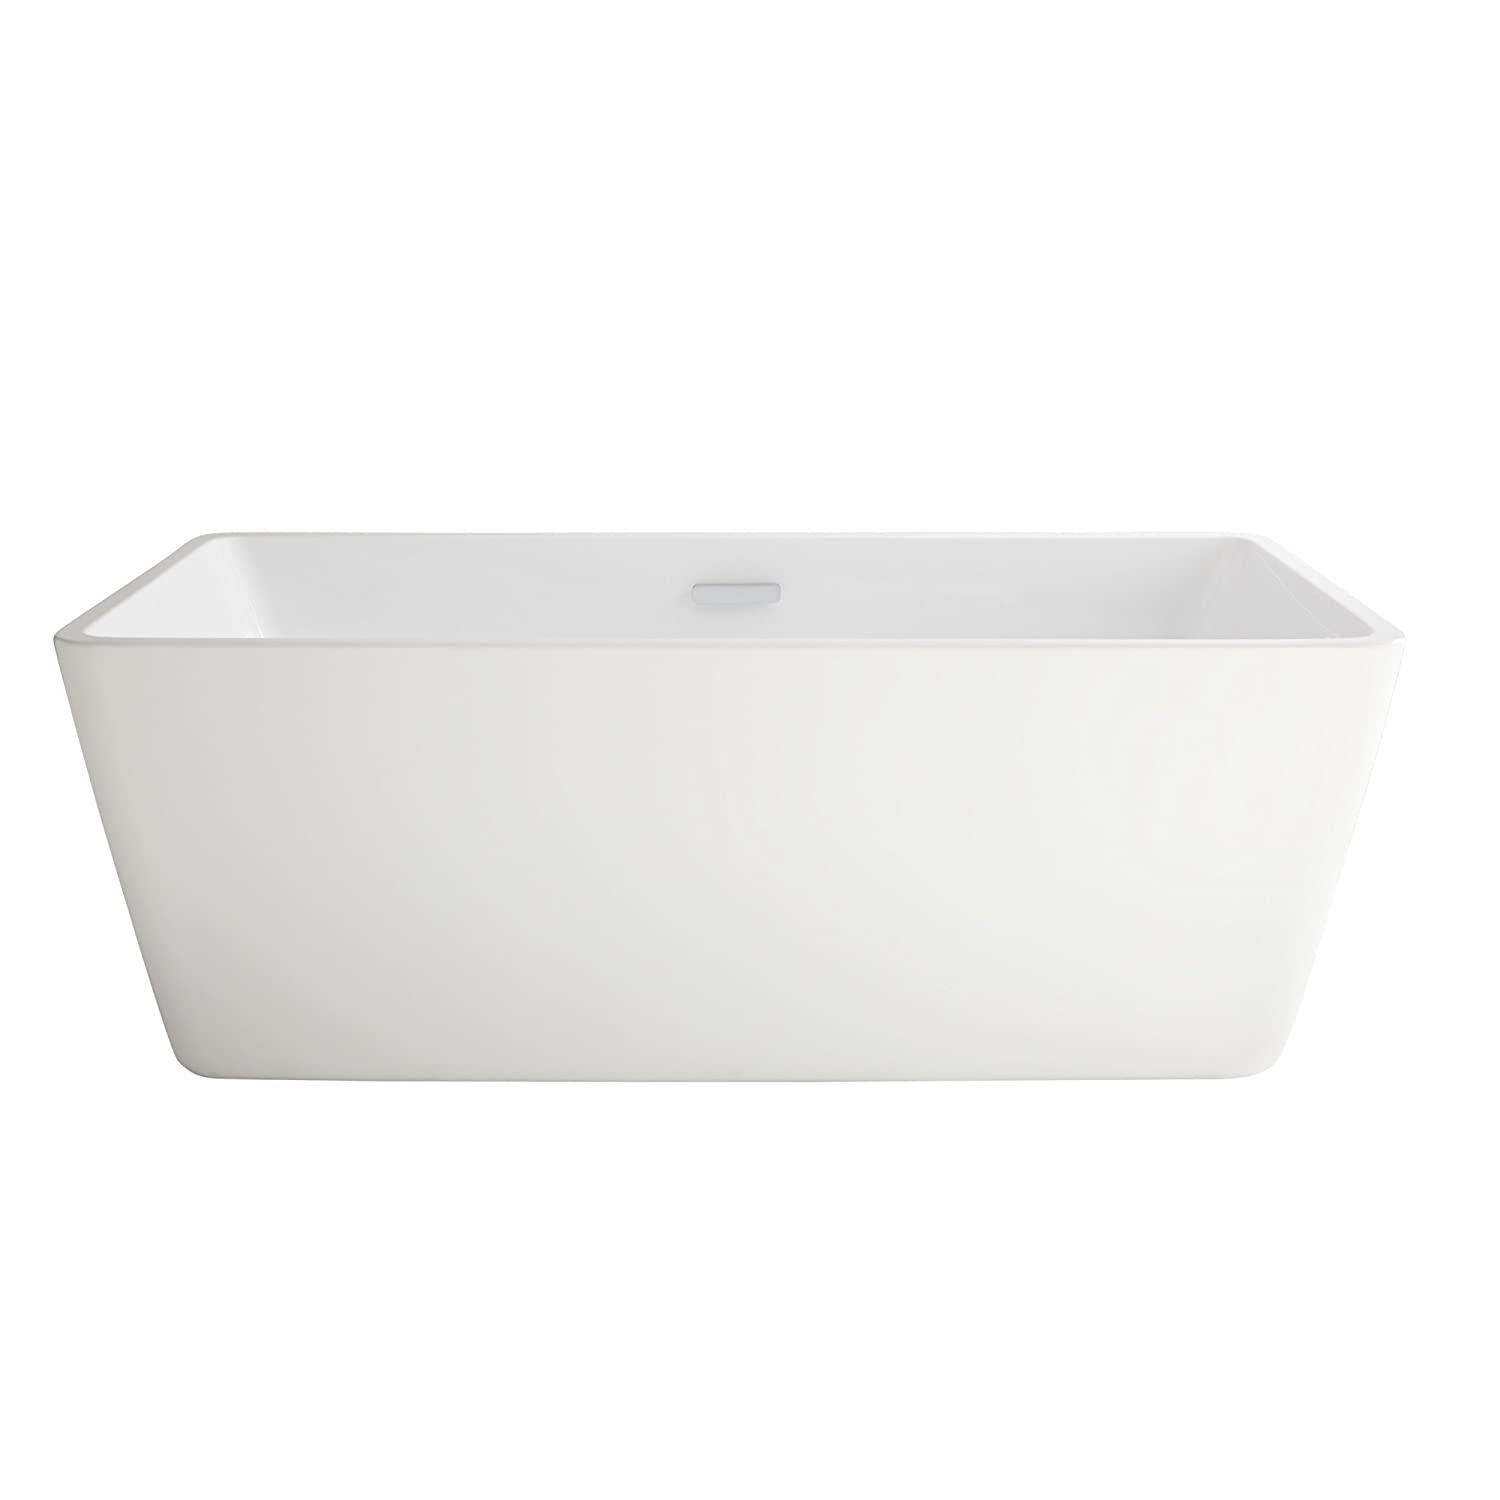 standard toilet freestanding tub seat walk youtube vertical price roca bathtub uk american in